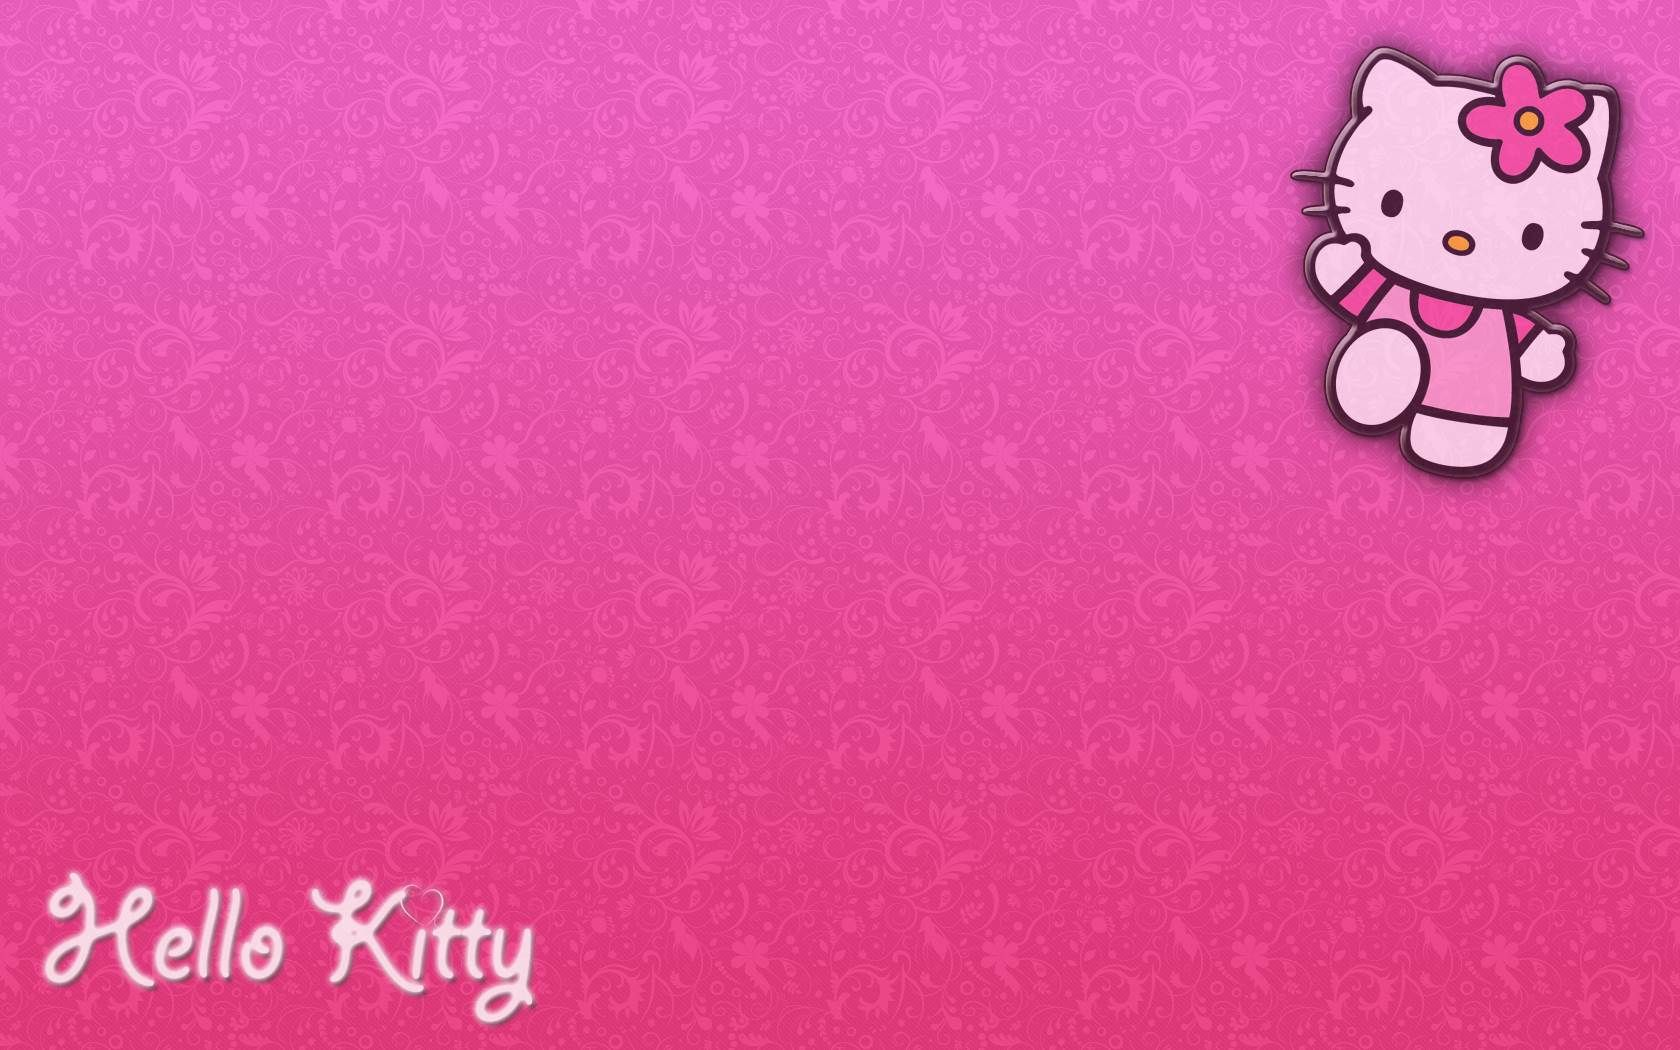 Simple Wallpaper Hello Kitty Hot Pink - c3d62074149bc843dccb015a3dfcc6d7  Graphic_715443.jpg